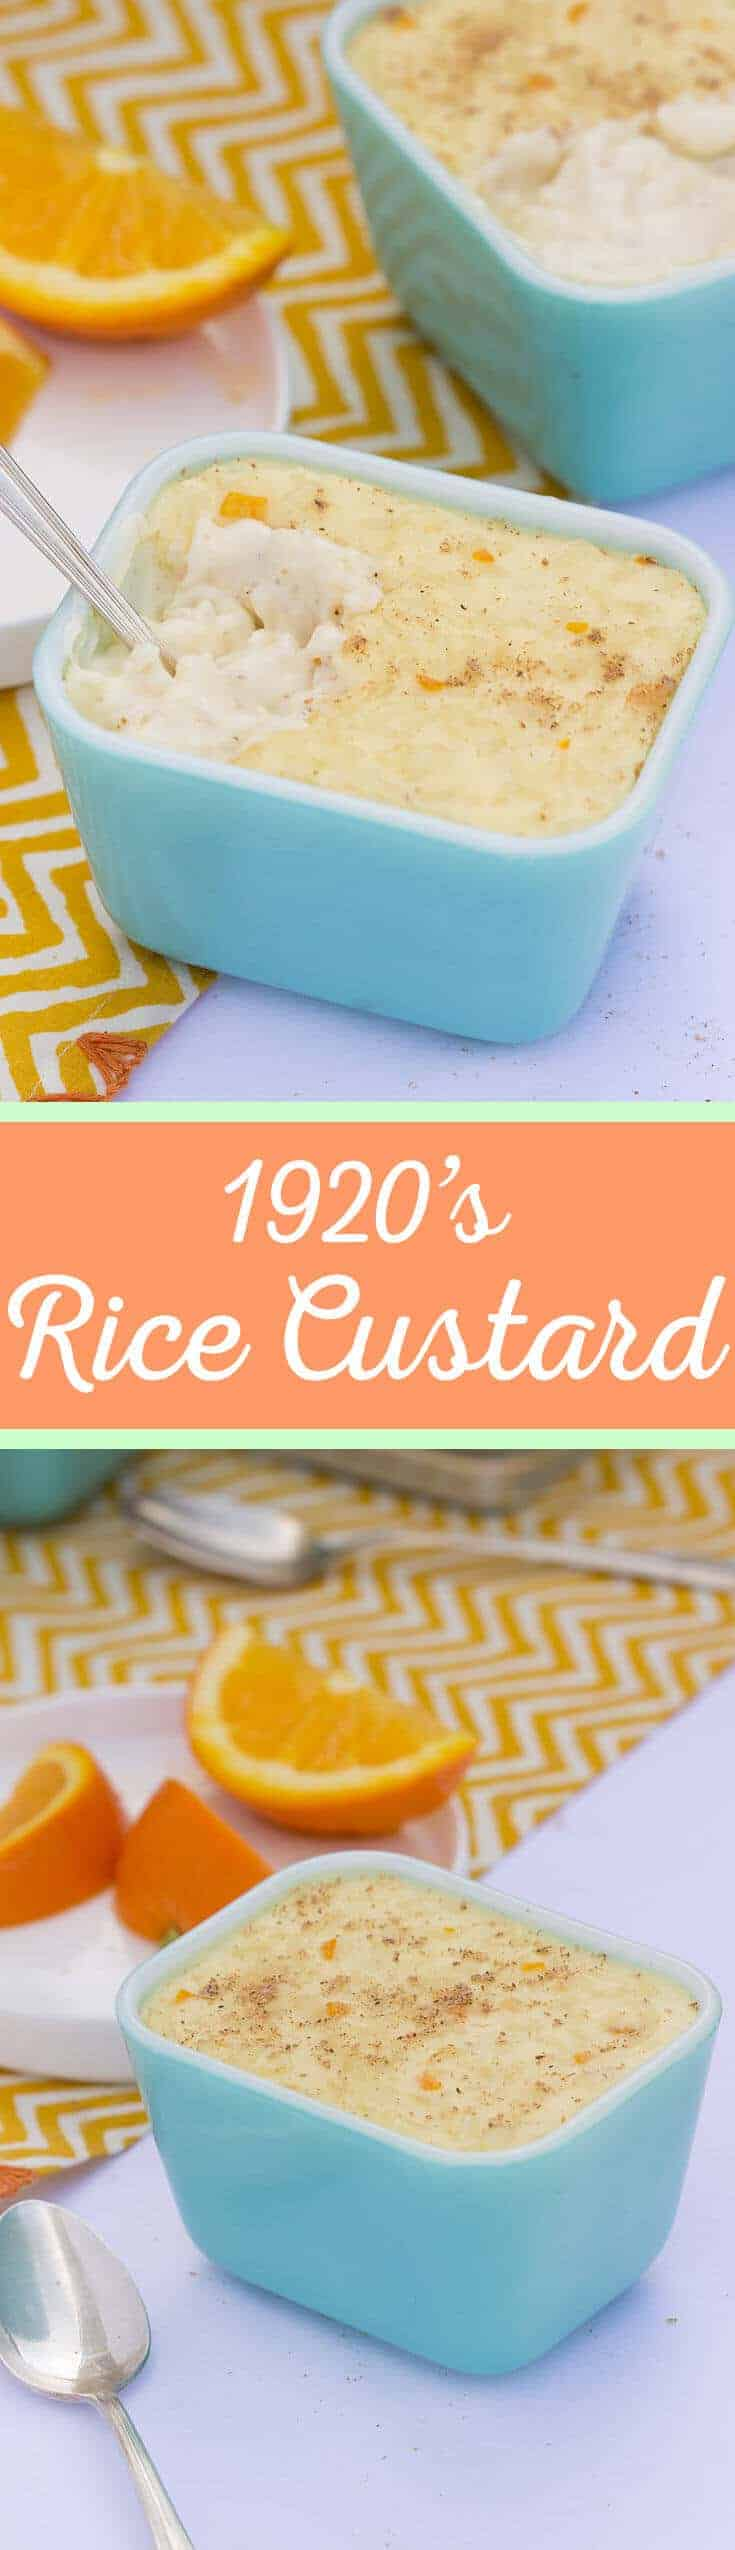 Rice Custard - An easy vintage recipe inspired by the 1920's. You'll want to make this sweet and creamy dessert all the time! #vintagerecipe #zestyrecipe